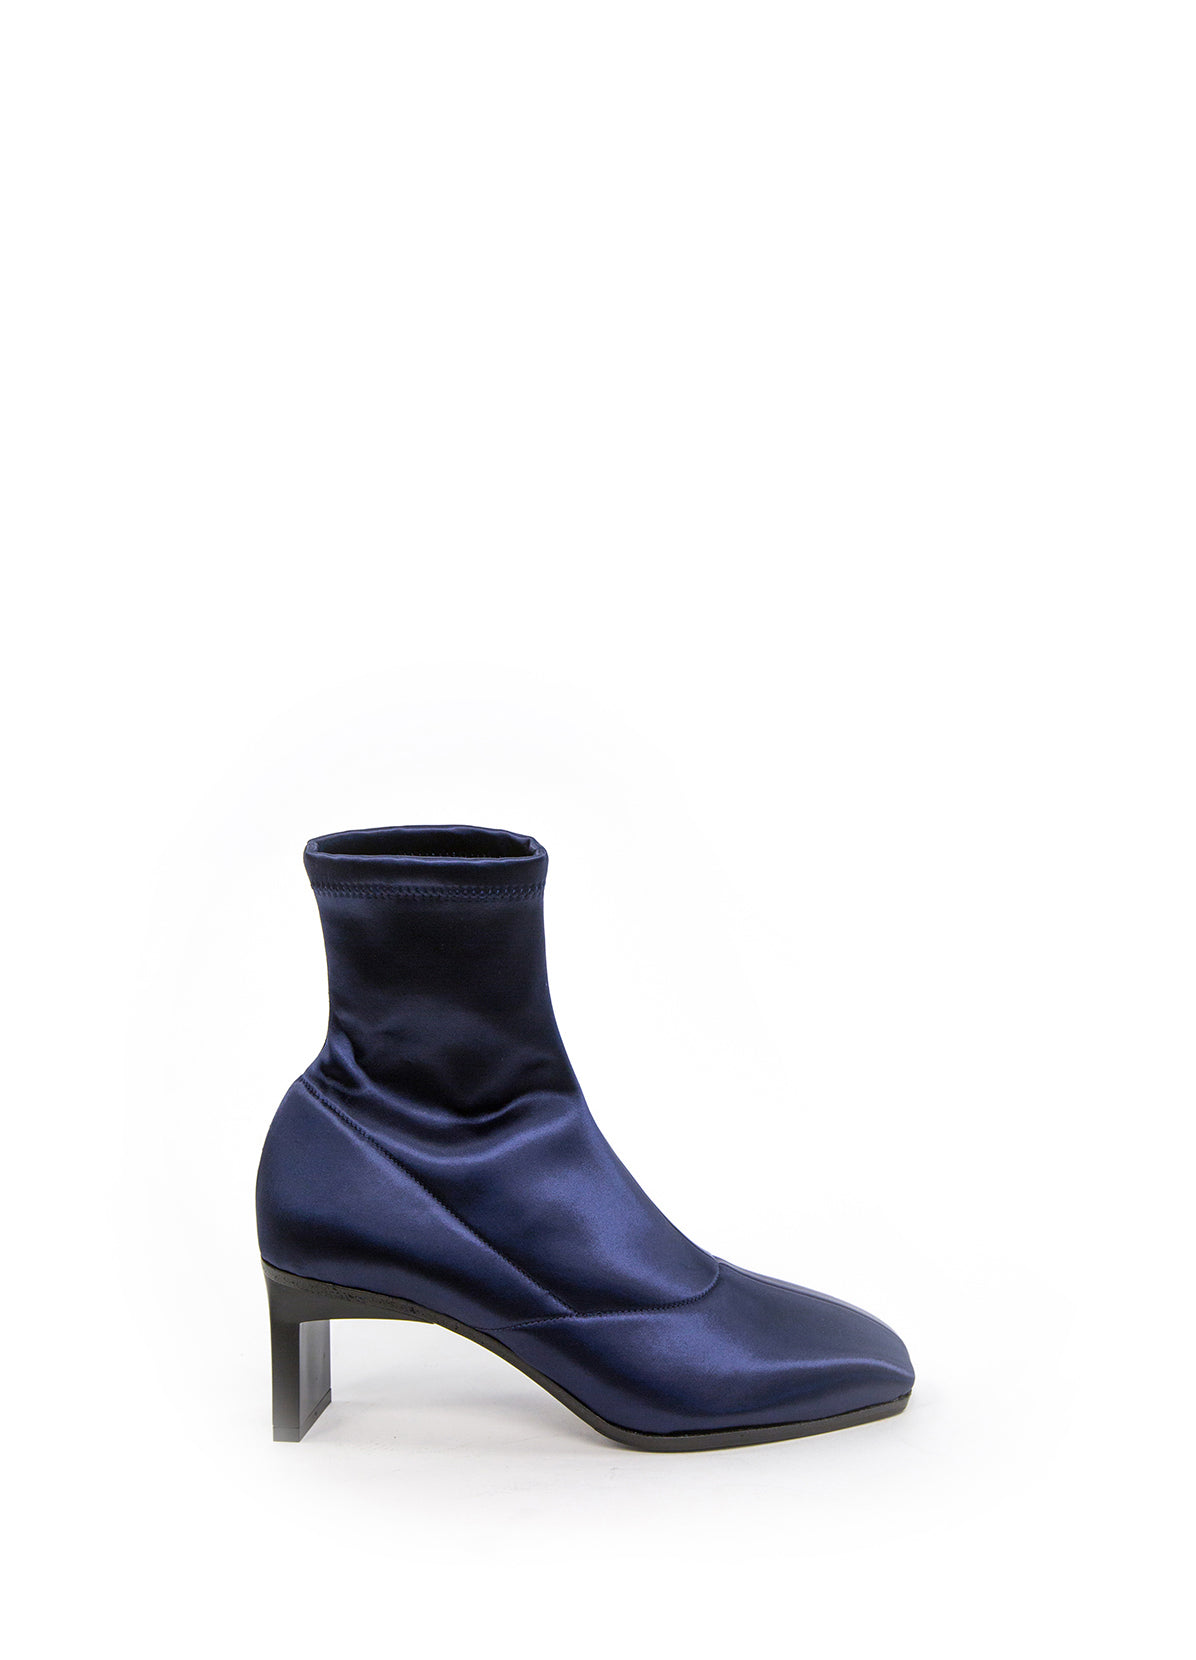 BLADE ANKLE BOOT